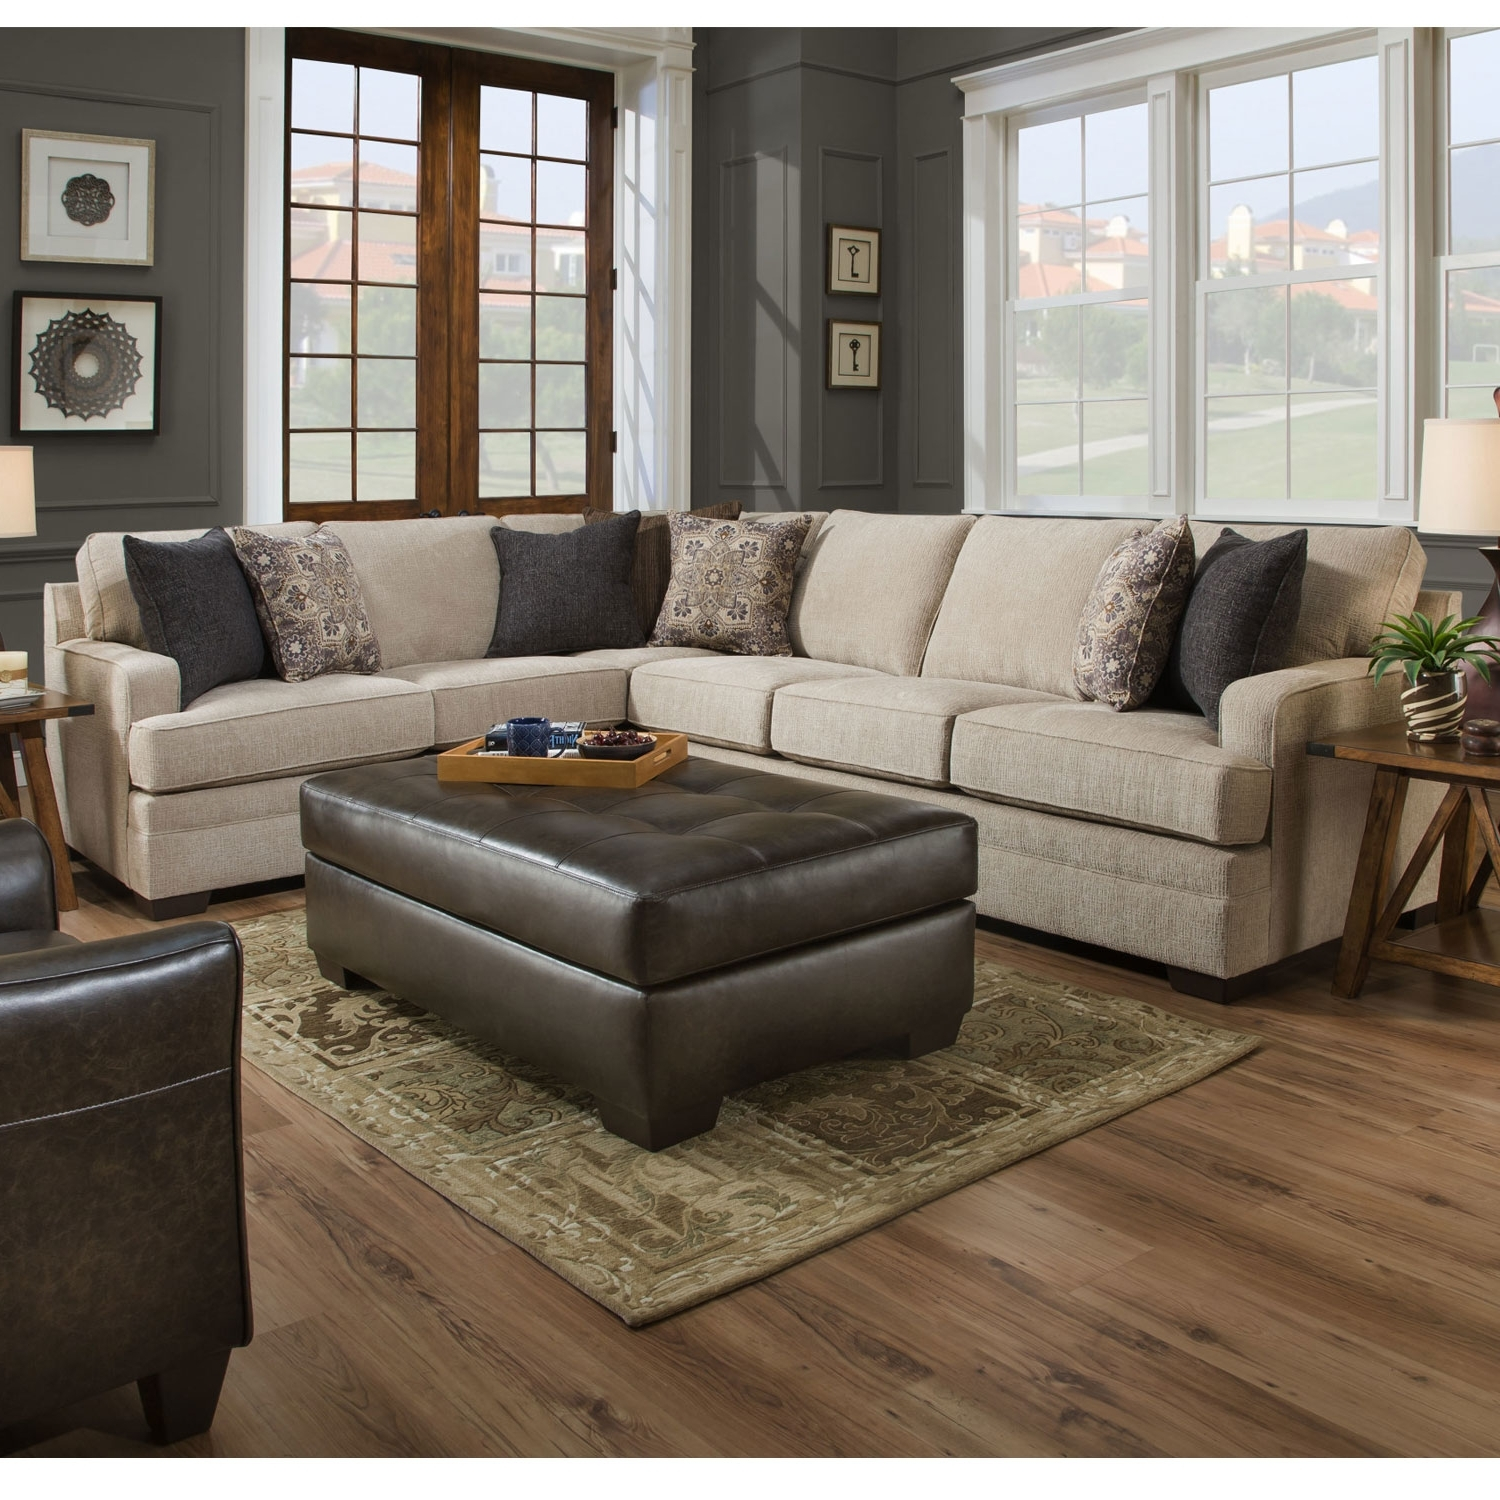 Fashionable Simmons Sectional Sofas Intended For Simmons 9165Br Macy Sand Sectional Sofa (View 3 of 20)